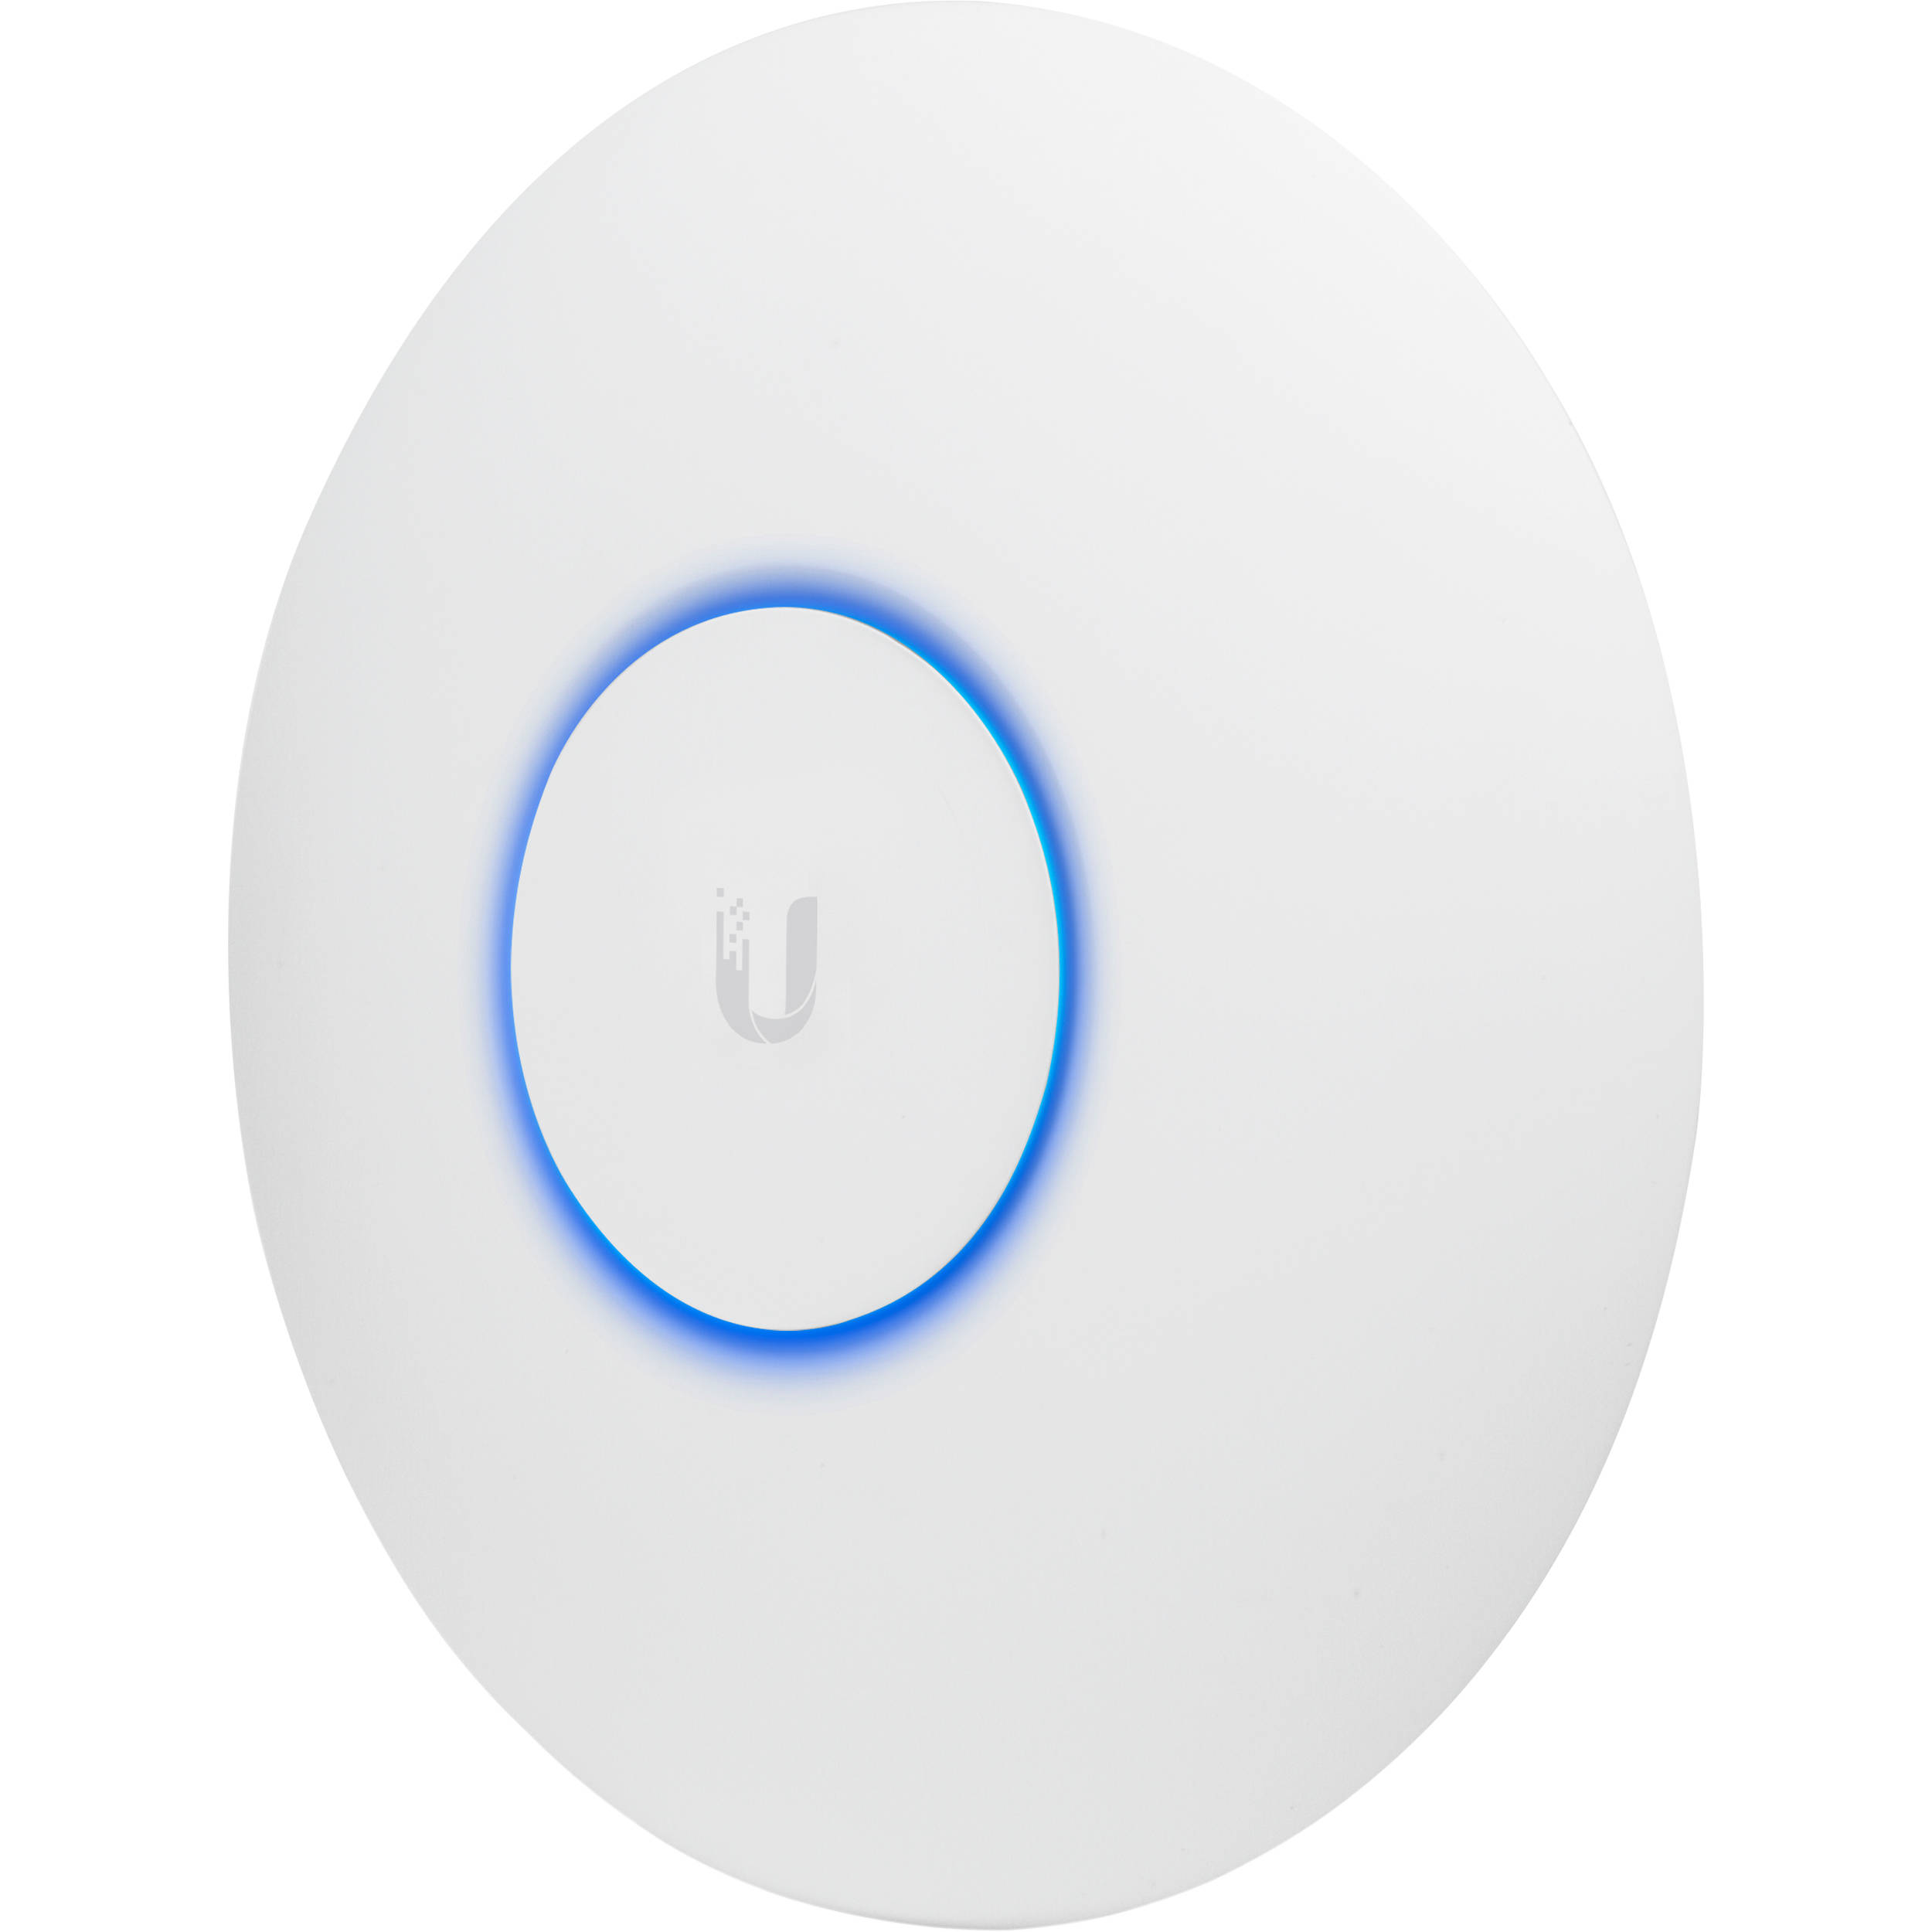 Ubiquiti UAP-PRO Access Point Drivers PC